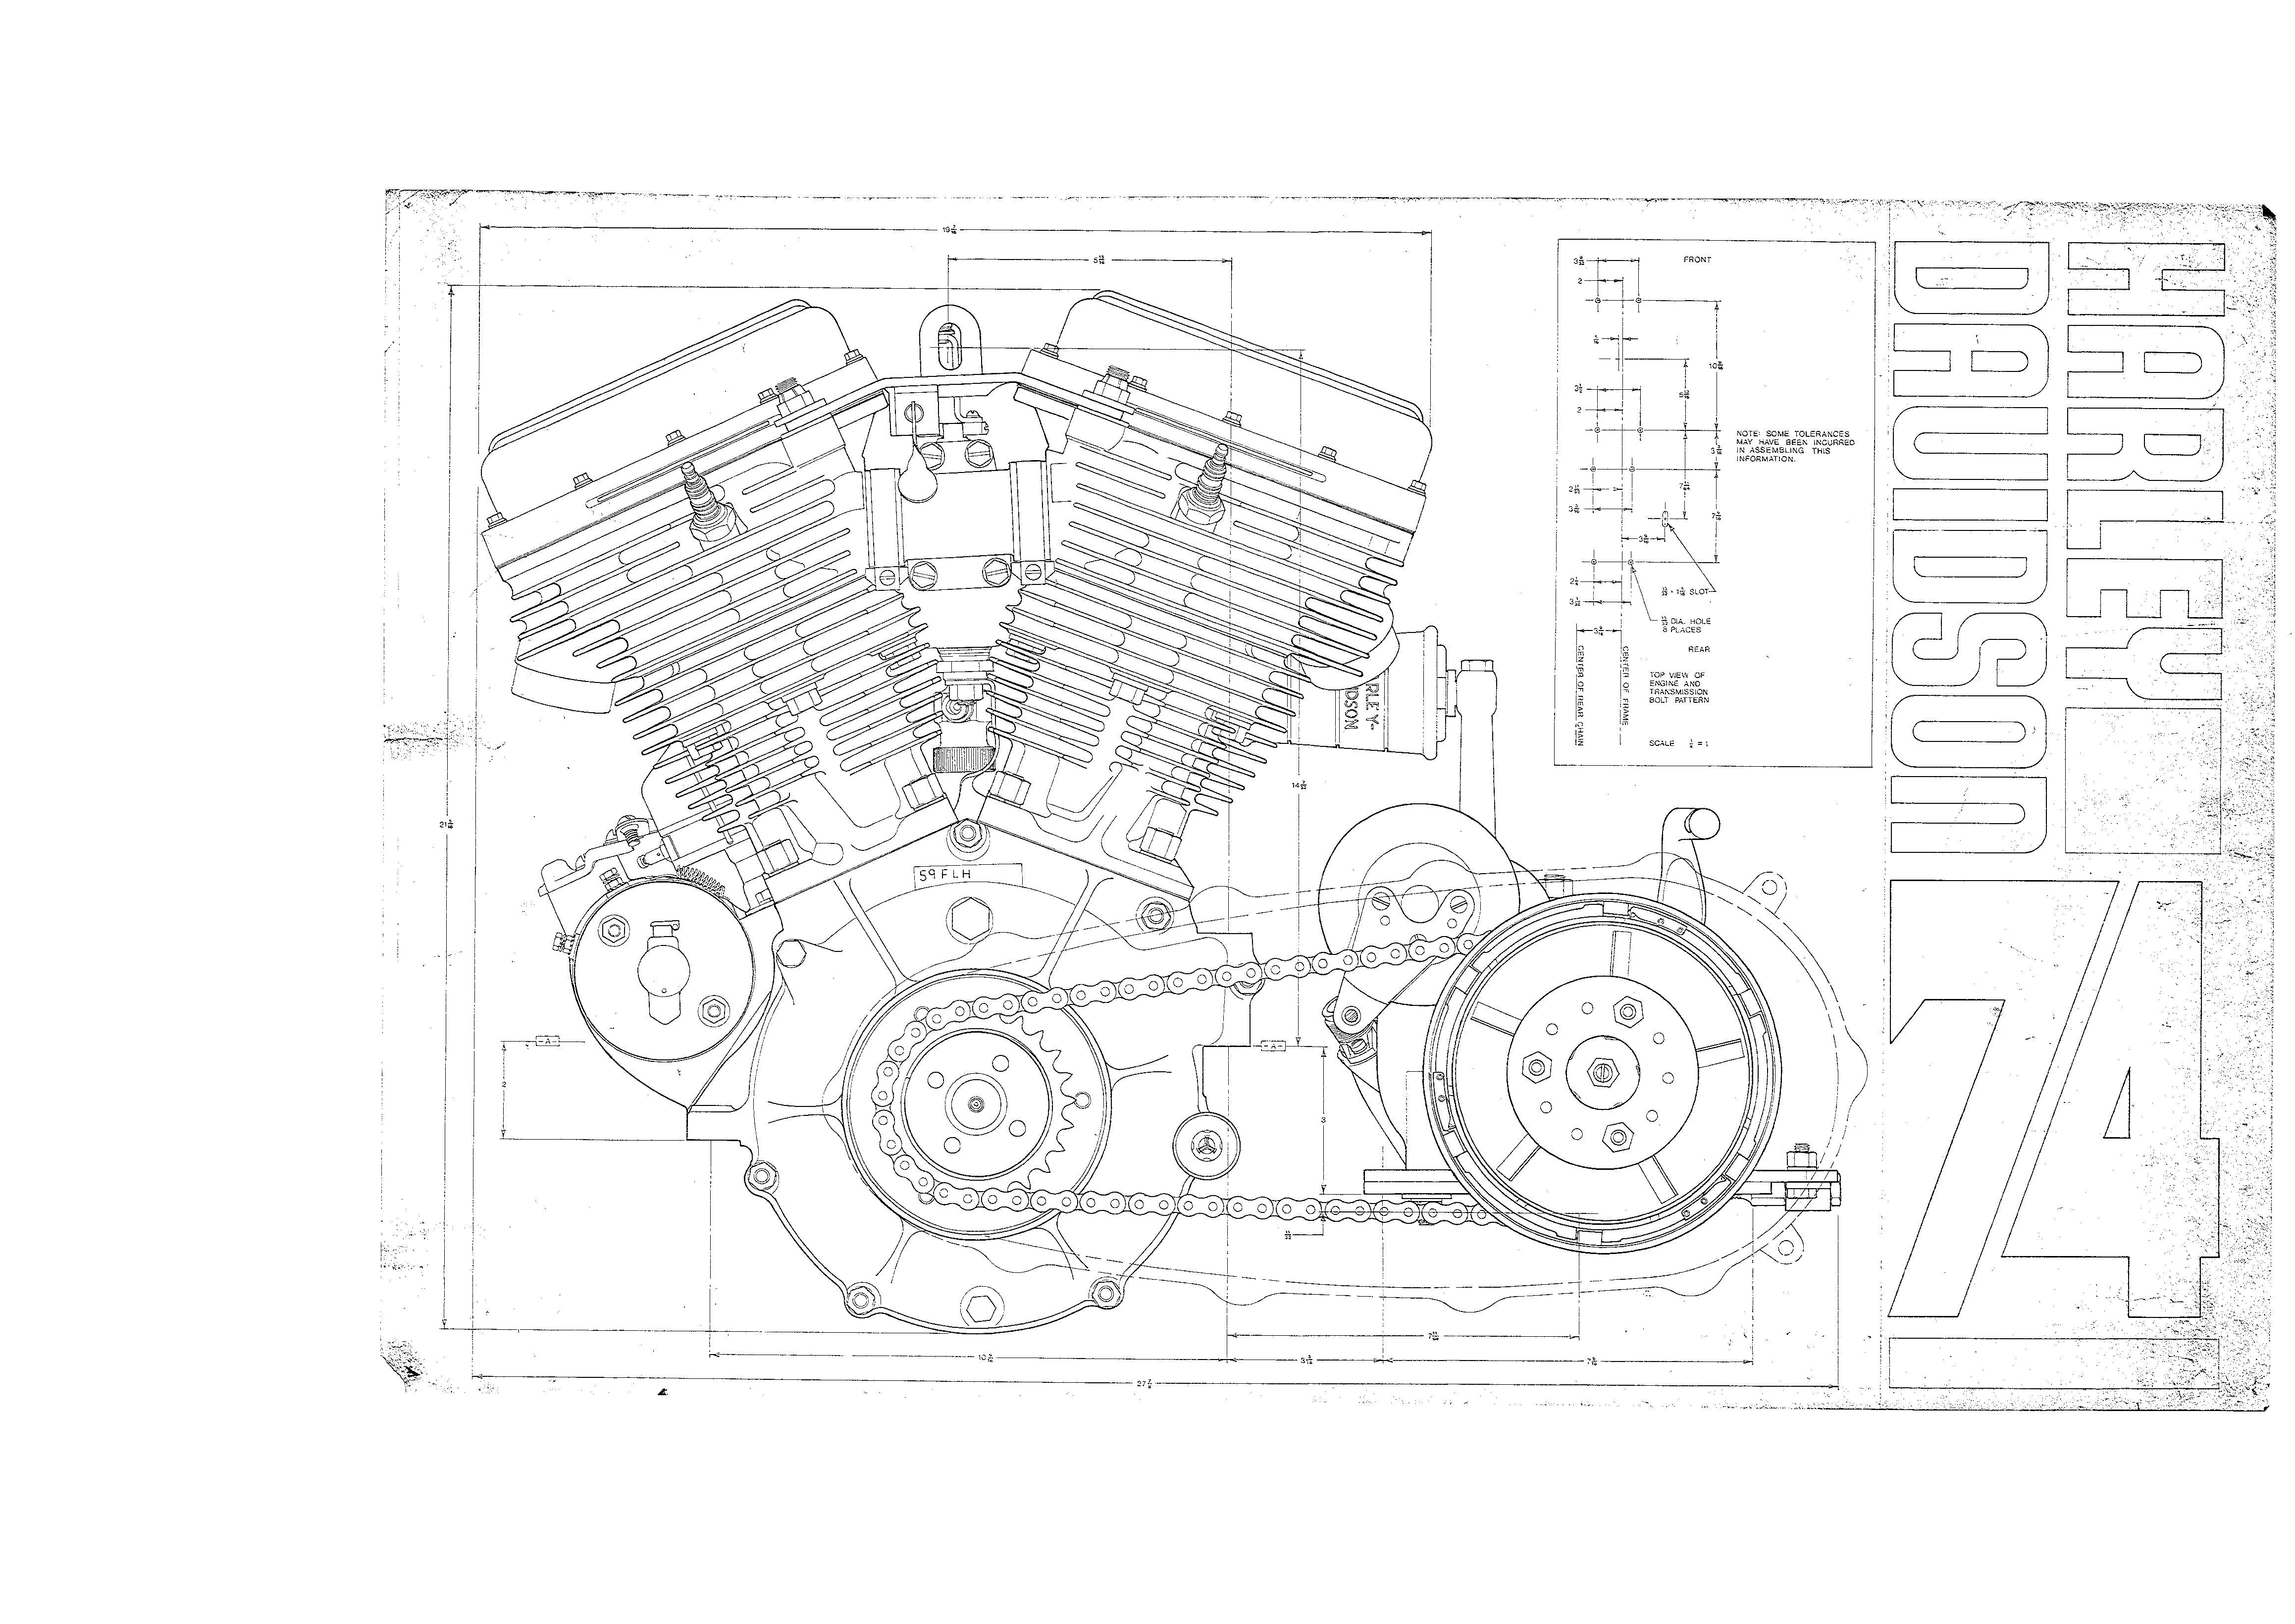 Blueprint engine diagram wiring info harley technical drawings harley pinterest engine and harley rh pinterest com au 08 malibu engine electrical diagram bmw e39 engine diagram malvernweather Images